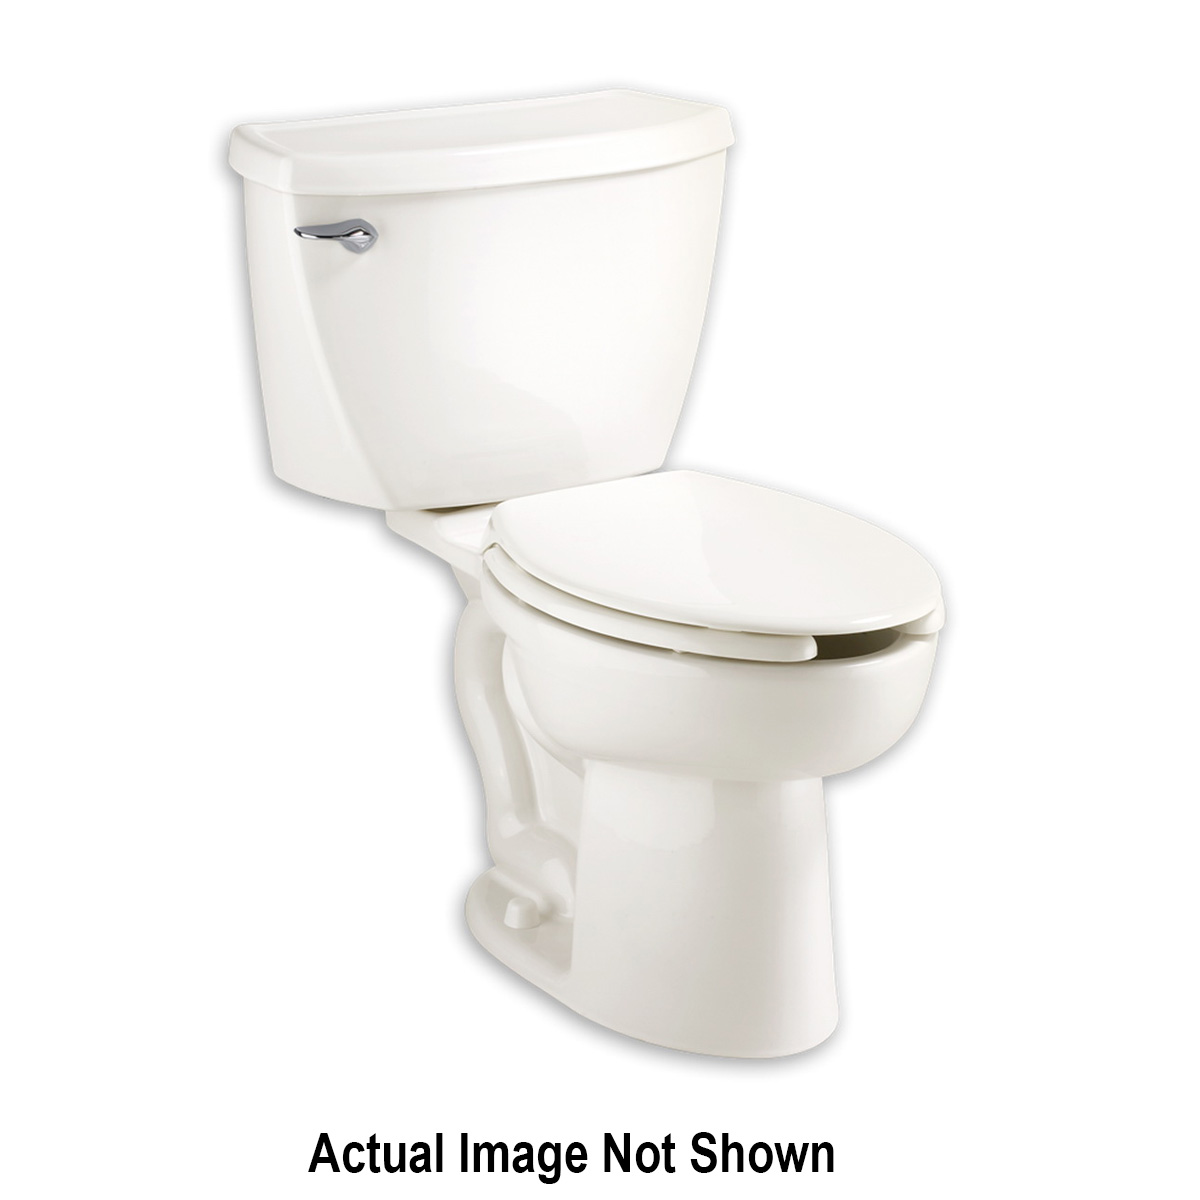 American Standard 3483.001.020 Toilet Bowl, White, Elongated, 12 in Rough-In, 16-1/2 in H Rim, 2-1/8 in Trapway, Cadet® FloWise® Right Height™